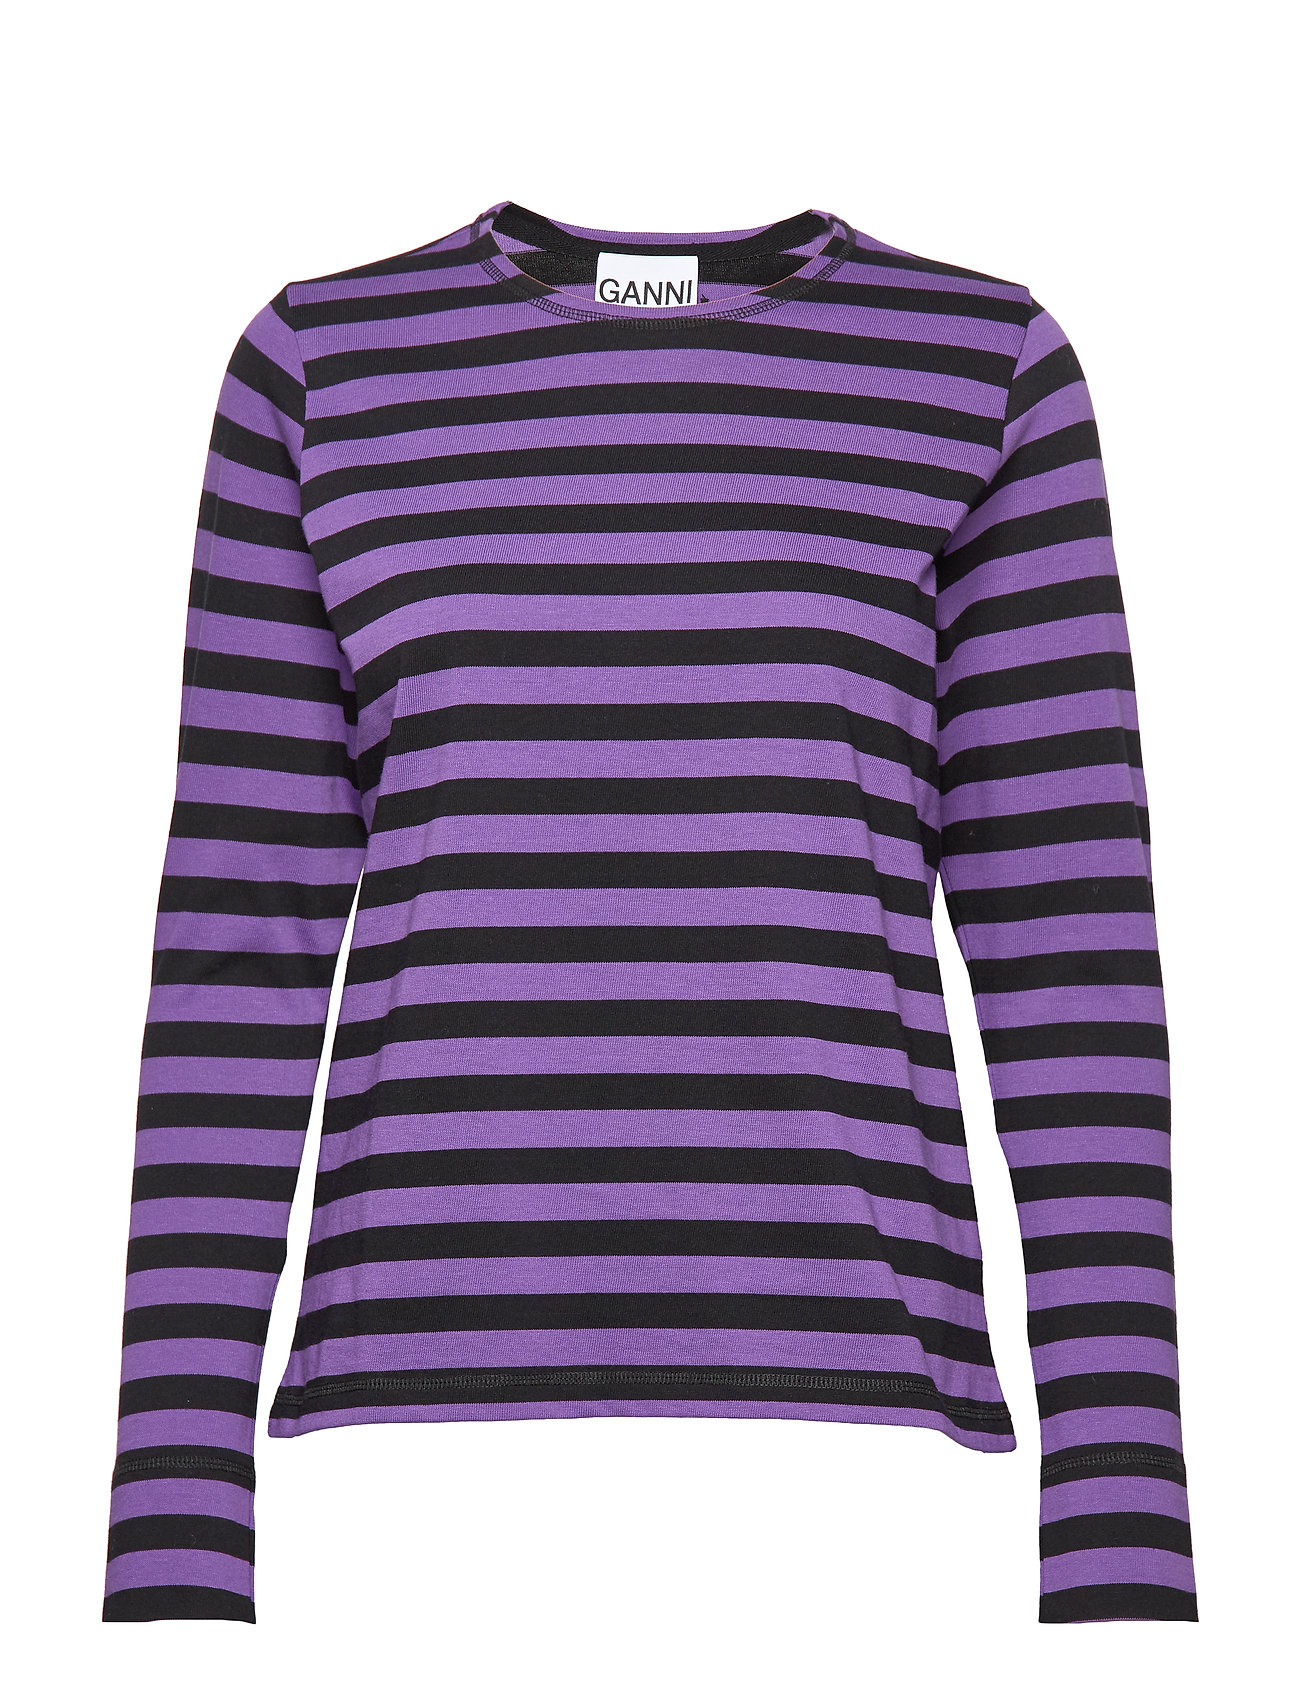 Ganni Striped Cotton Jersey - DEEP LAVENDER